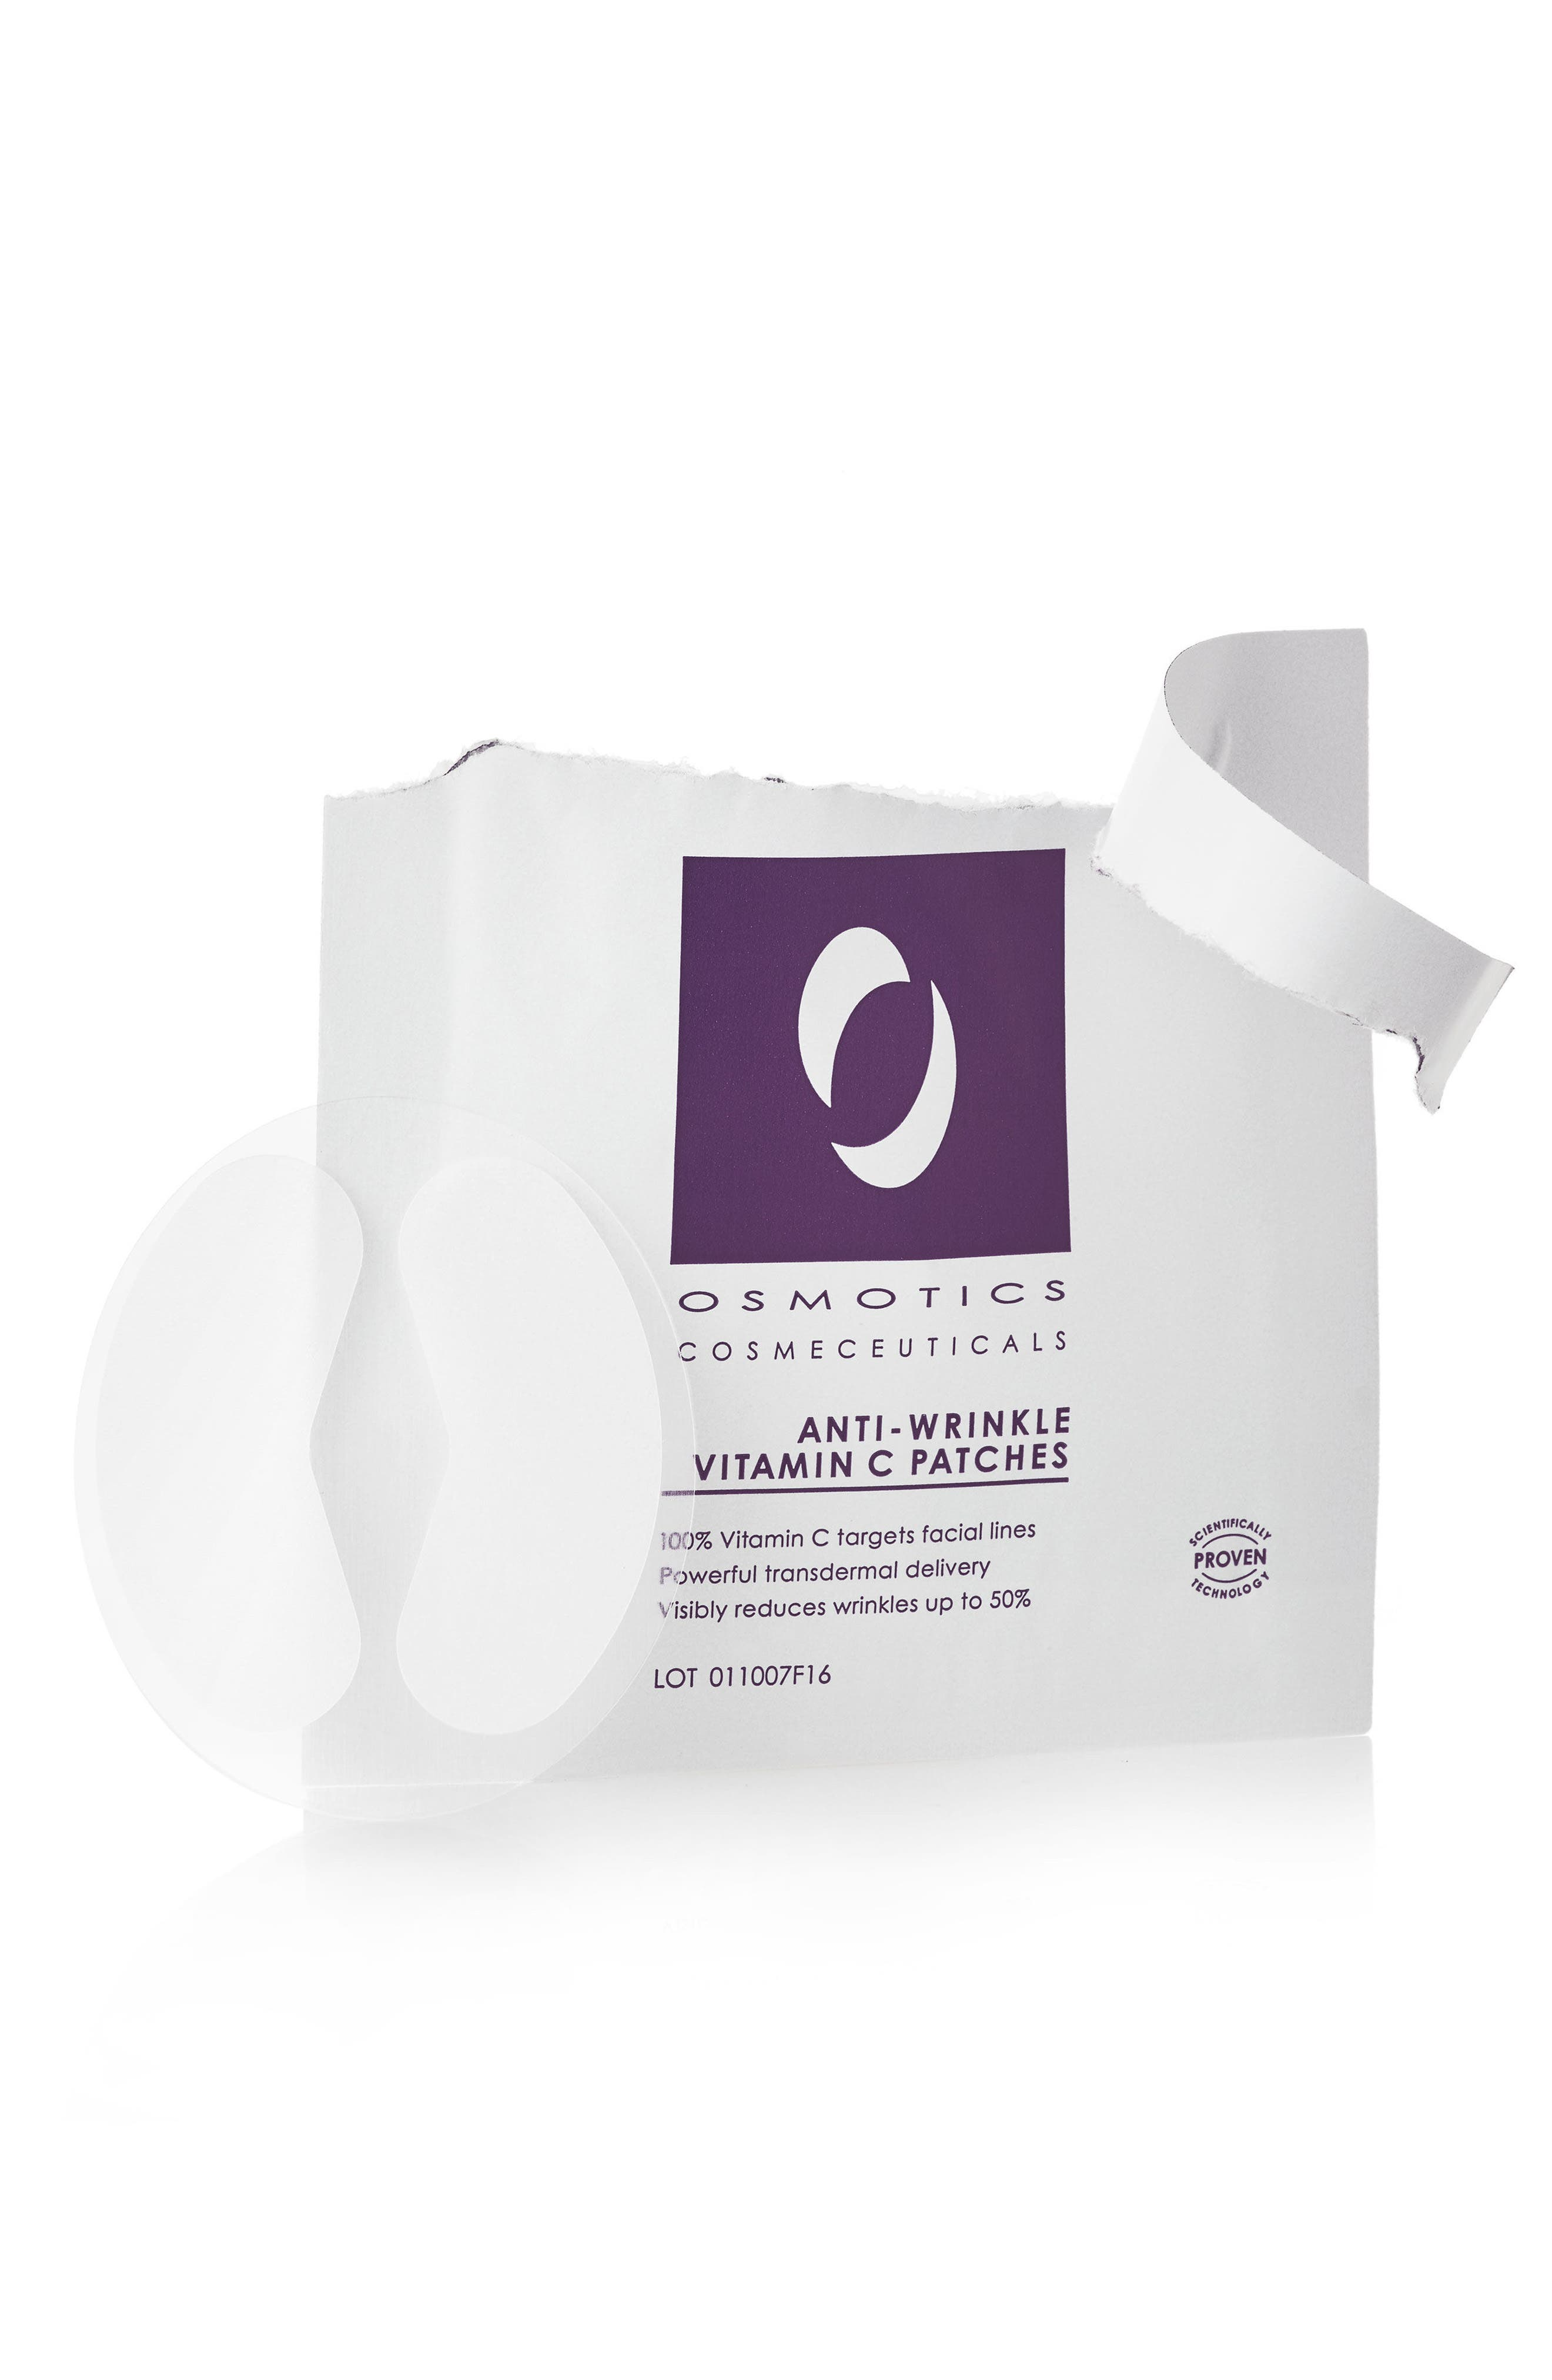 Osmotics Cosmeceuticals Anti-Wrinkle Vitamin C Patches